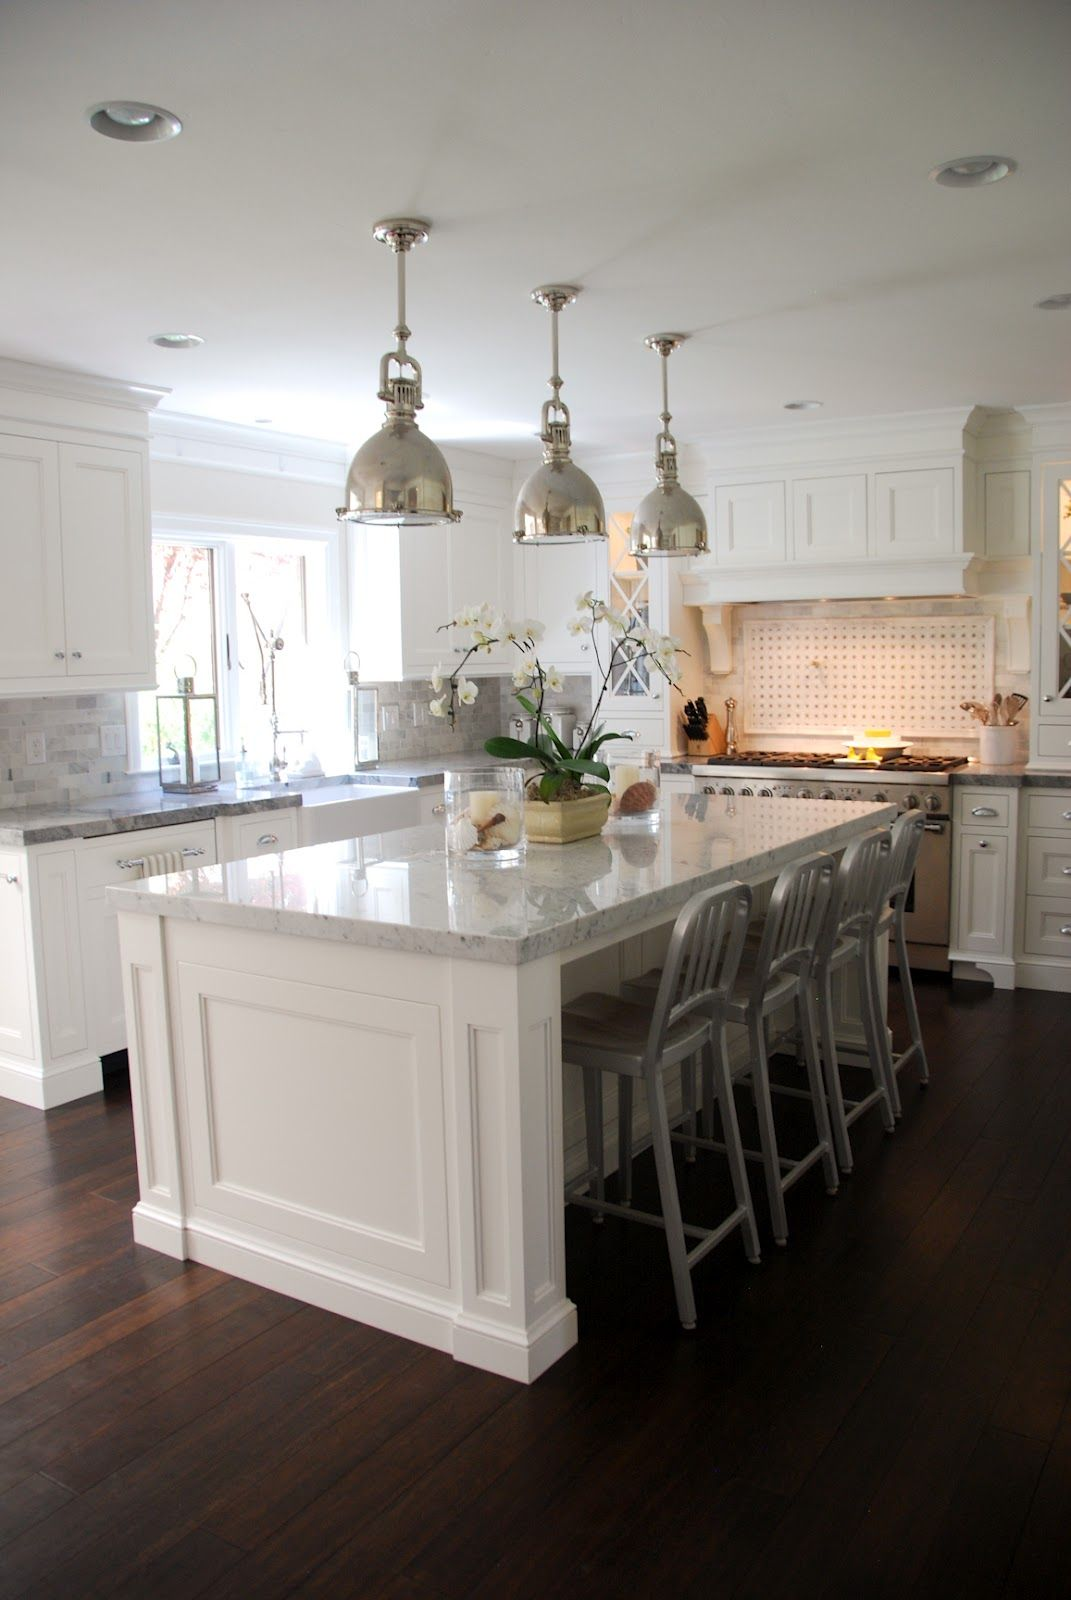 Cooking Island Find And Save Inspiration About Kitchen Island On